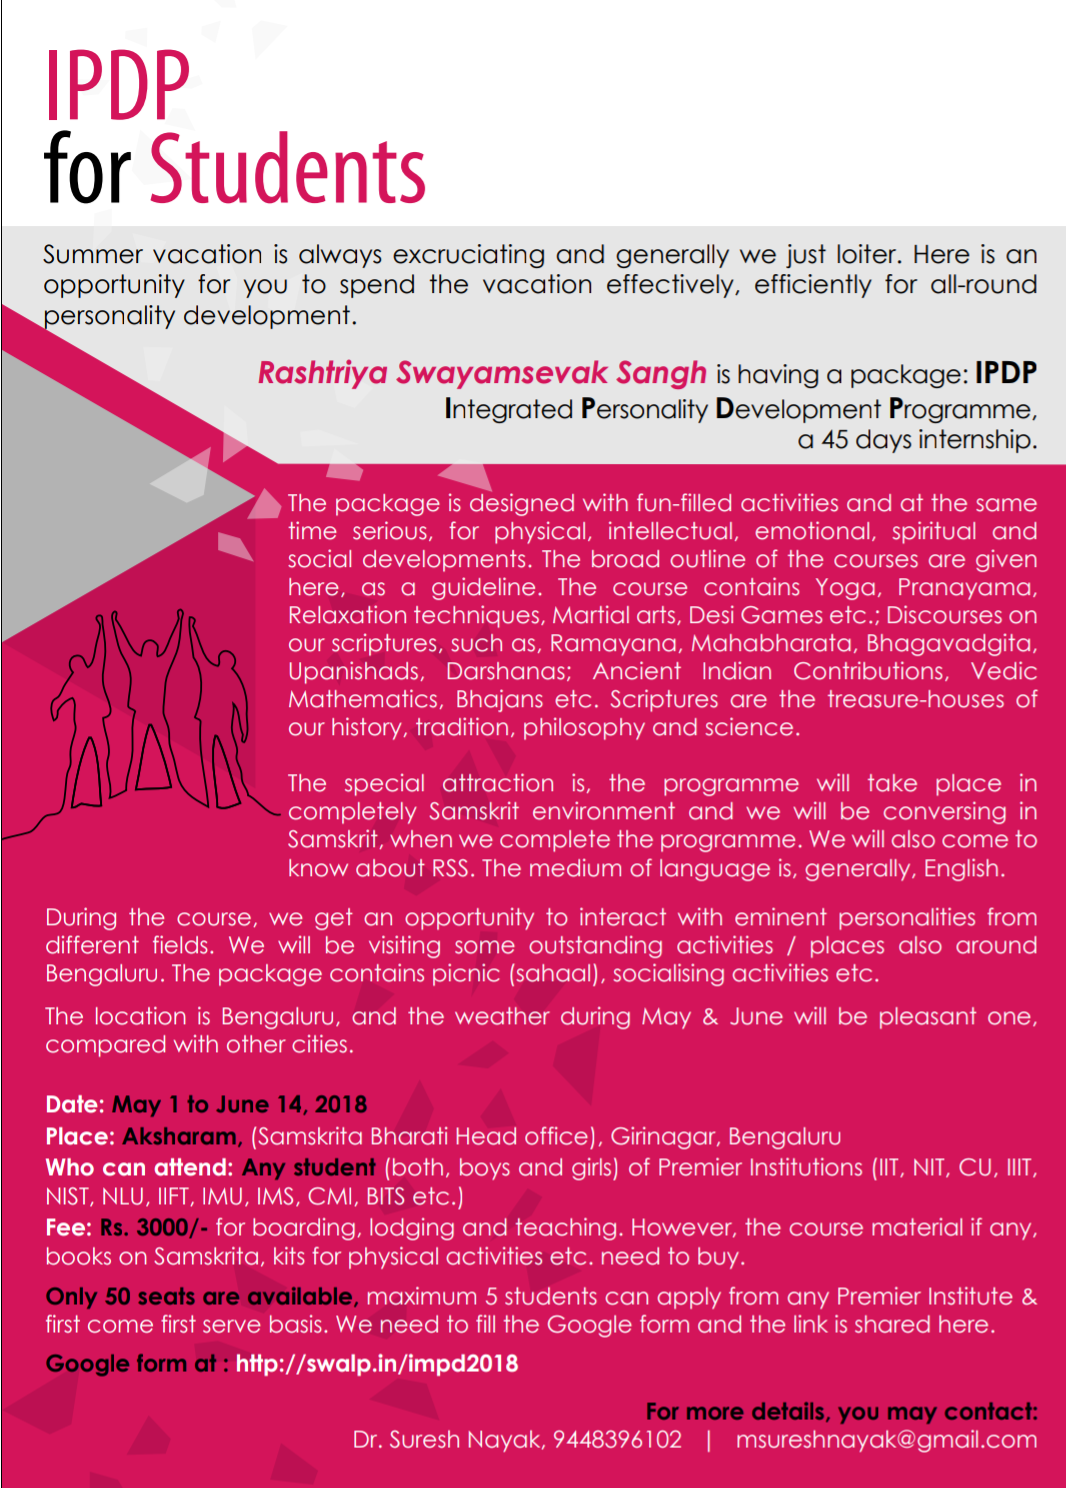 Excellent opportunity for students interested in IPDP initiative by RSS